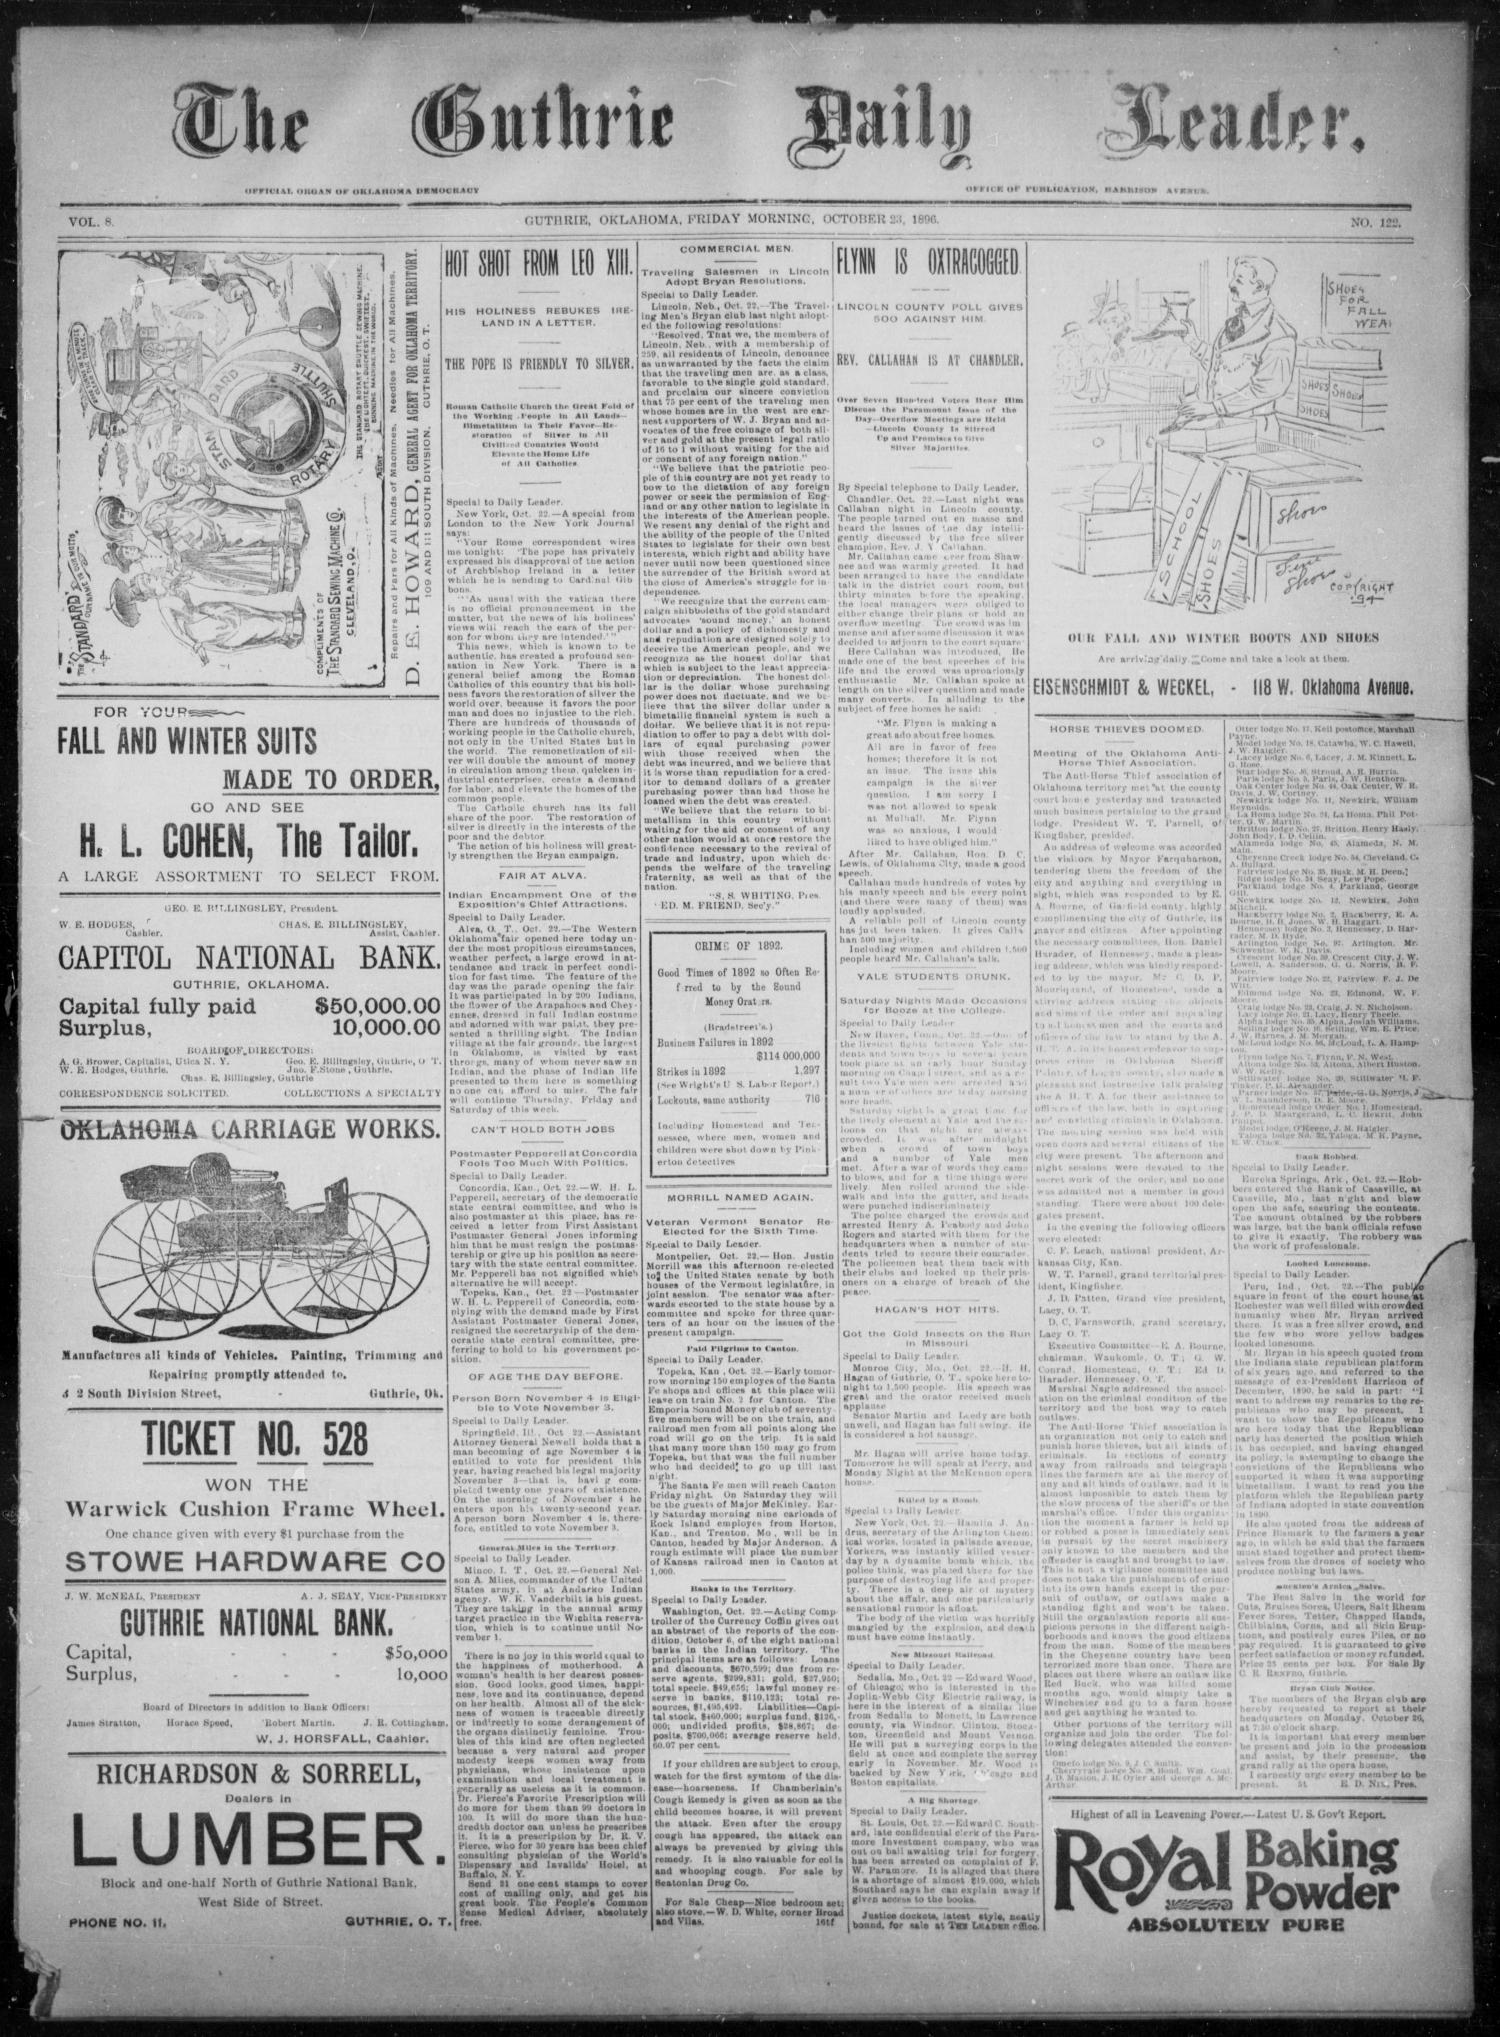 The Guthrie Daily Leader. (Guthrie, Okla.), Vol. 8, No. 122, Ed. 1, Friday, October 23, 1896                                                                                                      [Sequence #]: 1 of 4